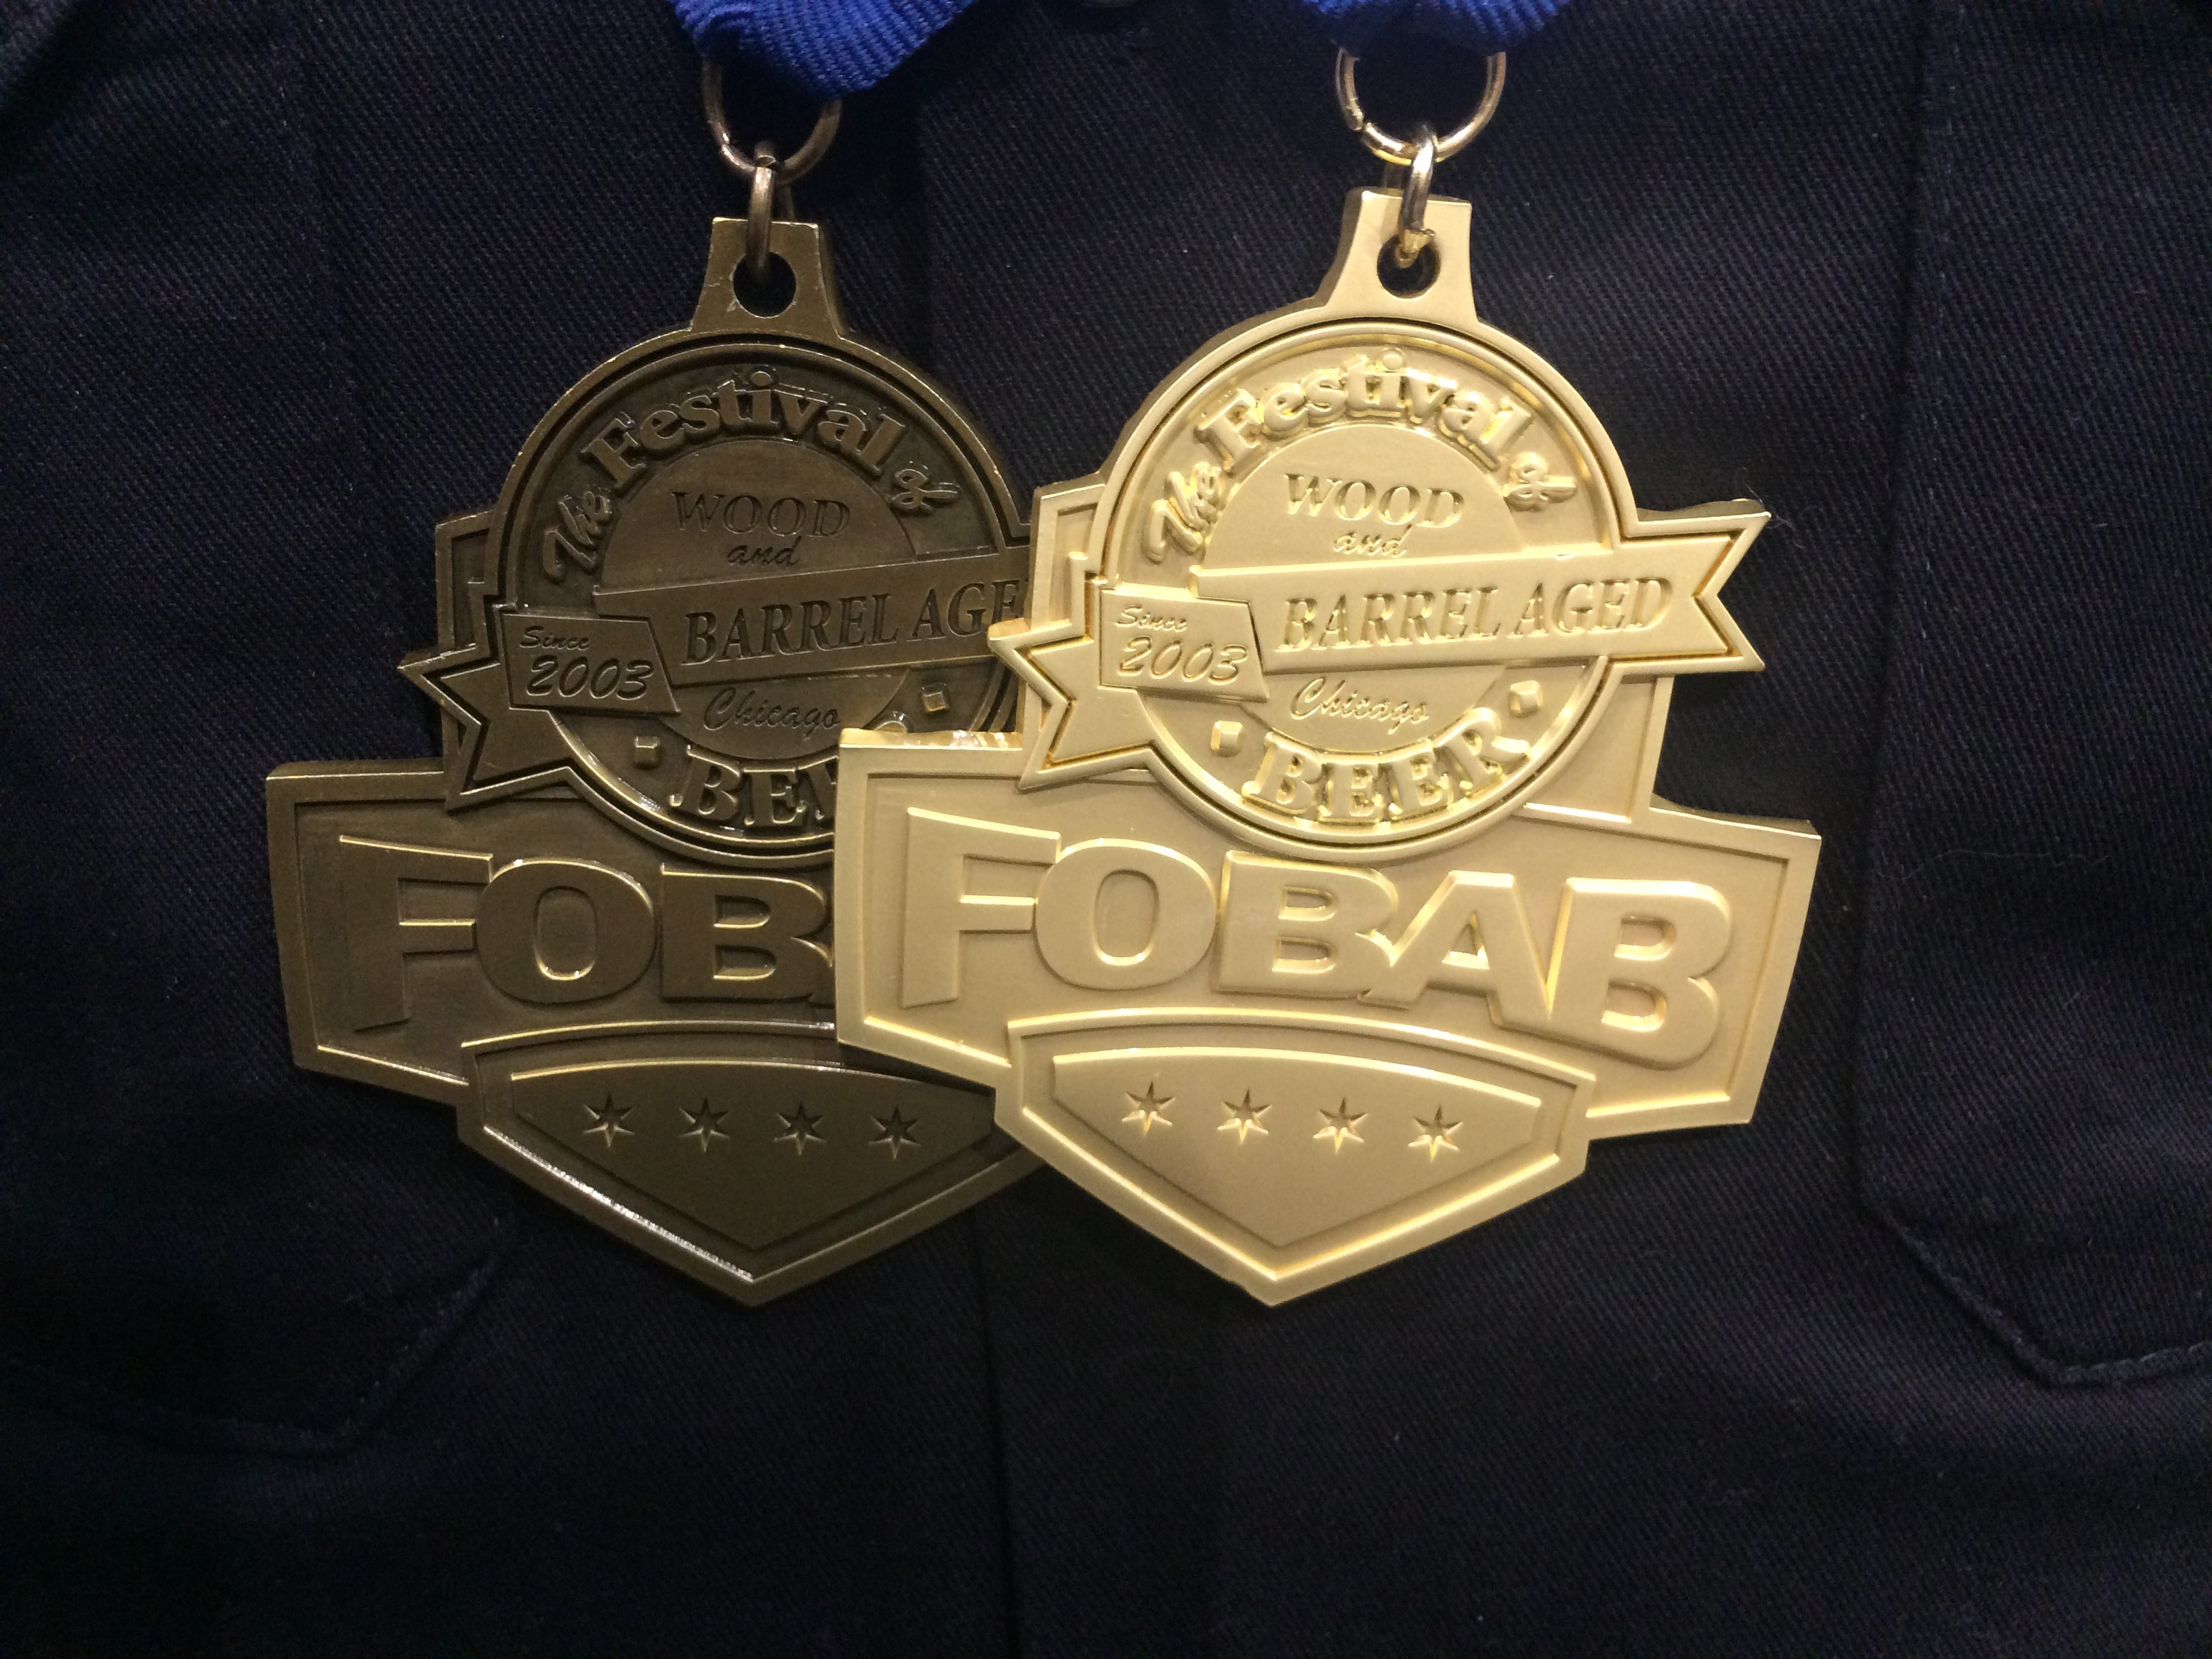 Gigantic Gold Medal (left) and Best in Show (right) at 2015 FoBAB